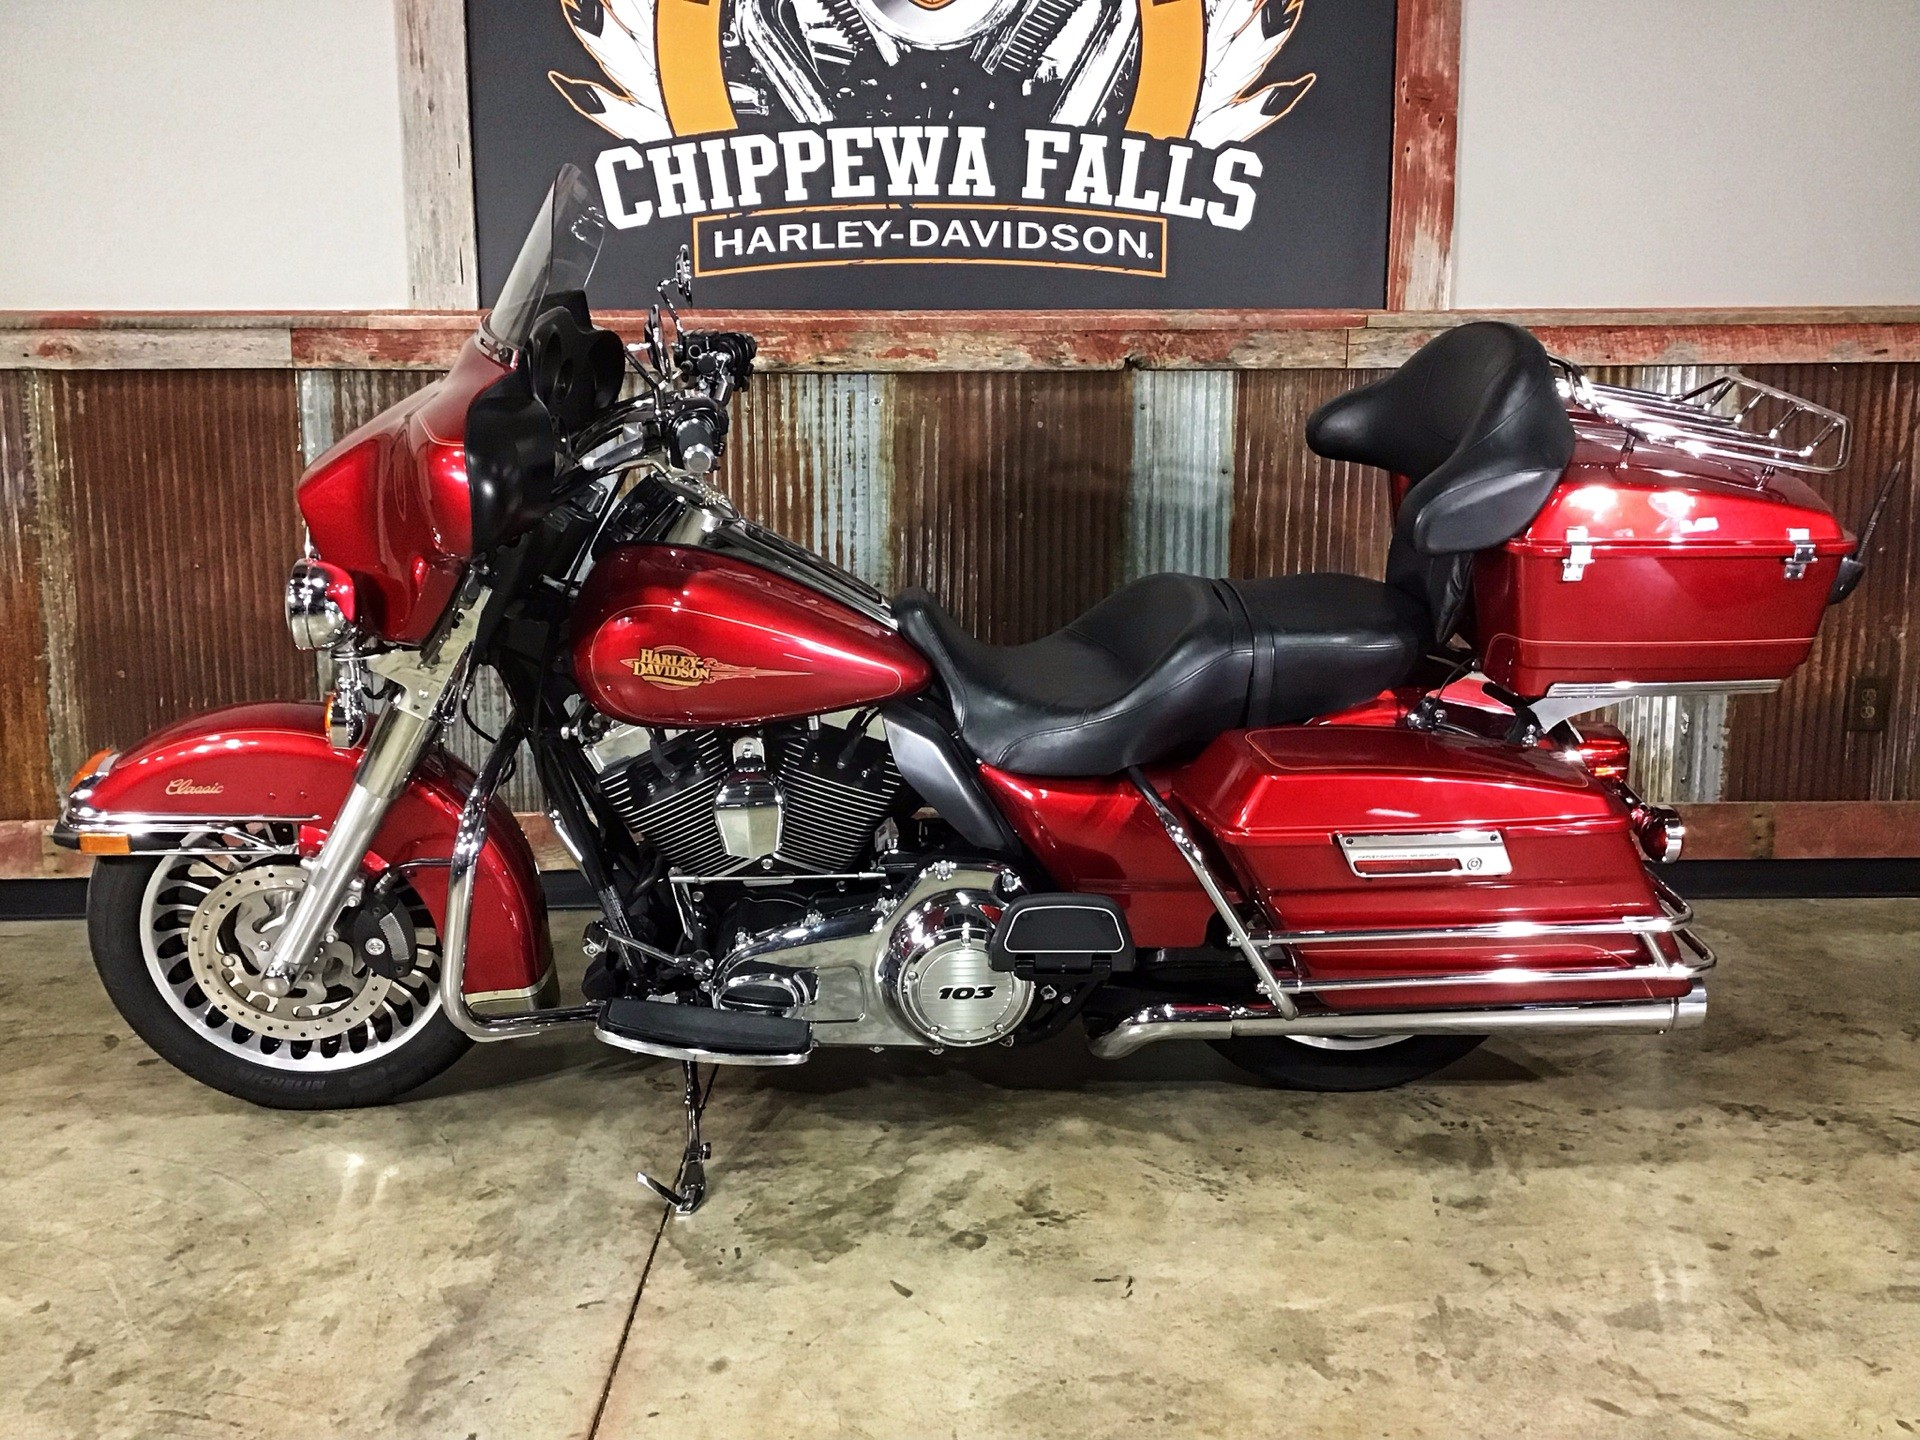 2012 Harley-Davidson Electra Glide® Classic in Chippewa Falls, Wisconsin - Photo 8